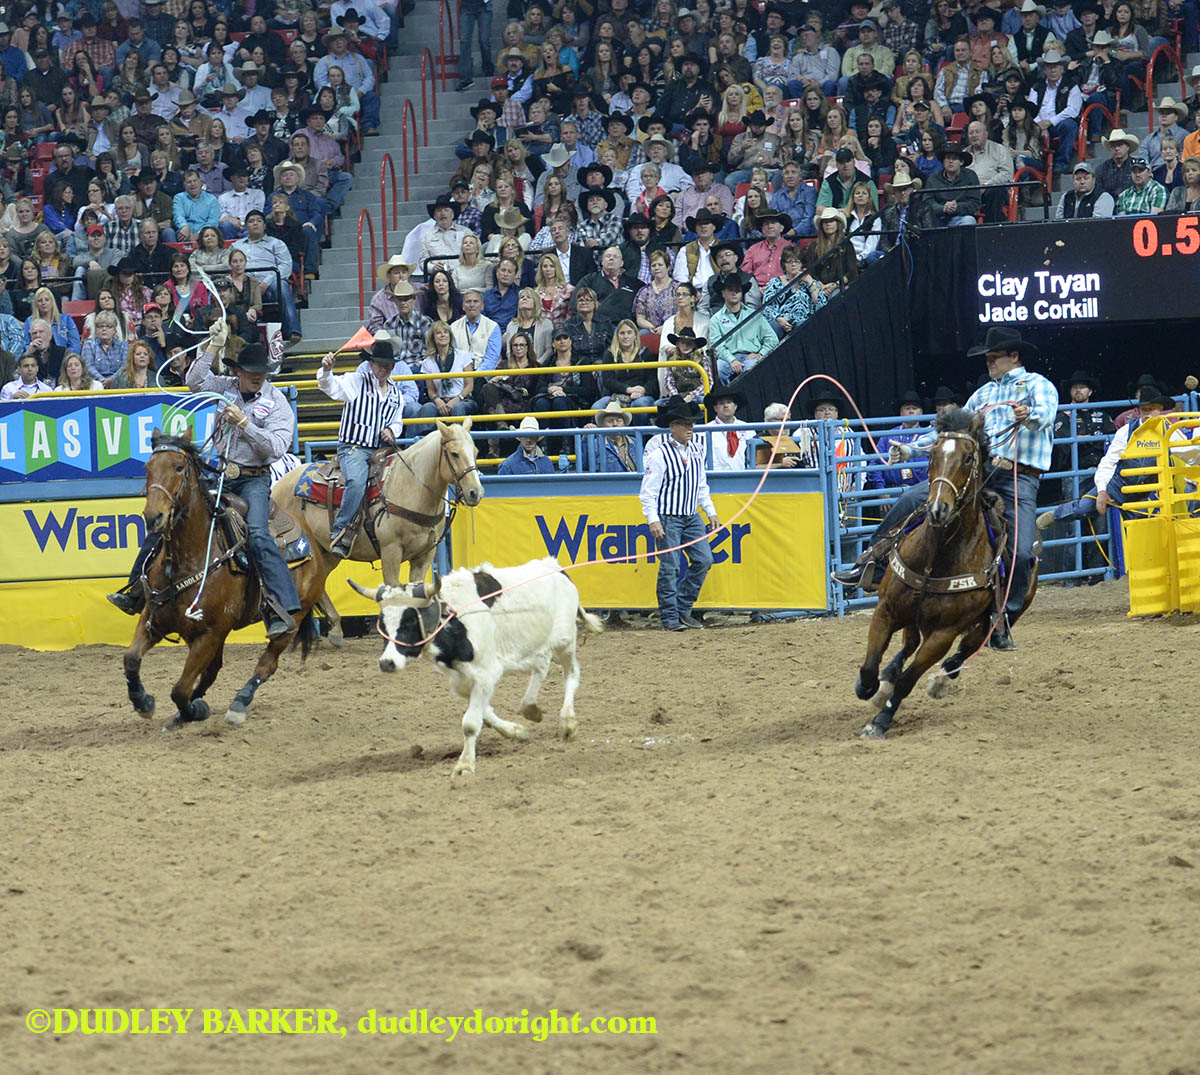 Clay Tryan, round three, 2014 WNFR, Dec. 6, 2014 || Photo by DUDLEY BARKER, dudleydoright.com